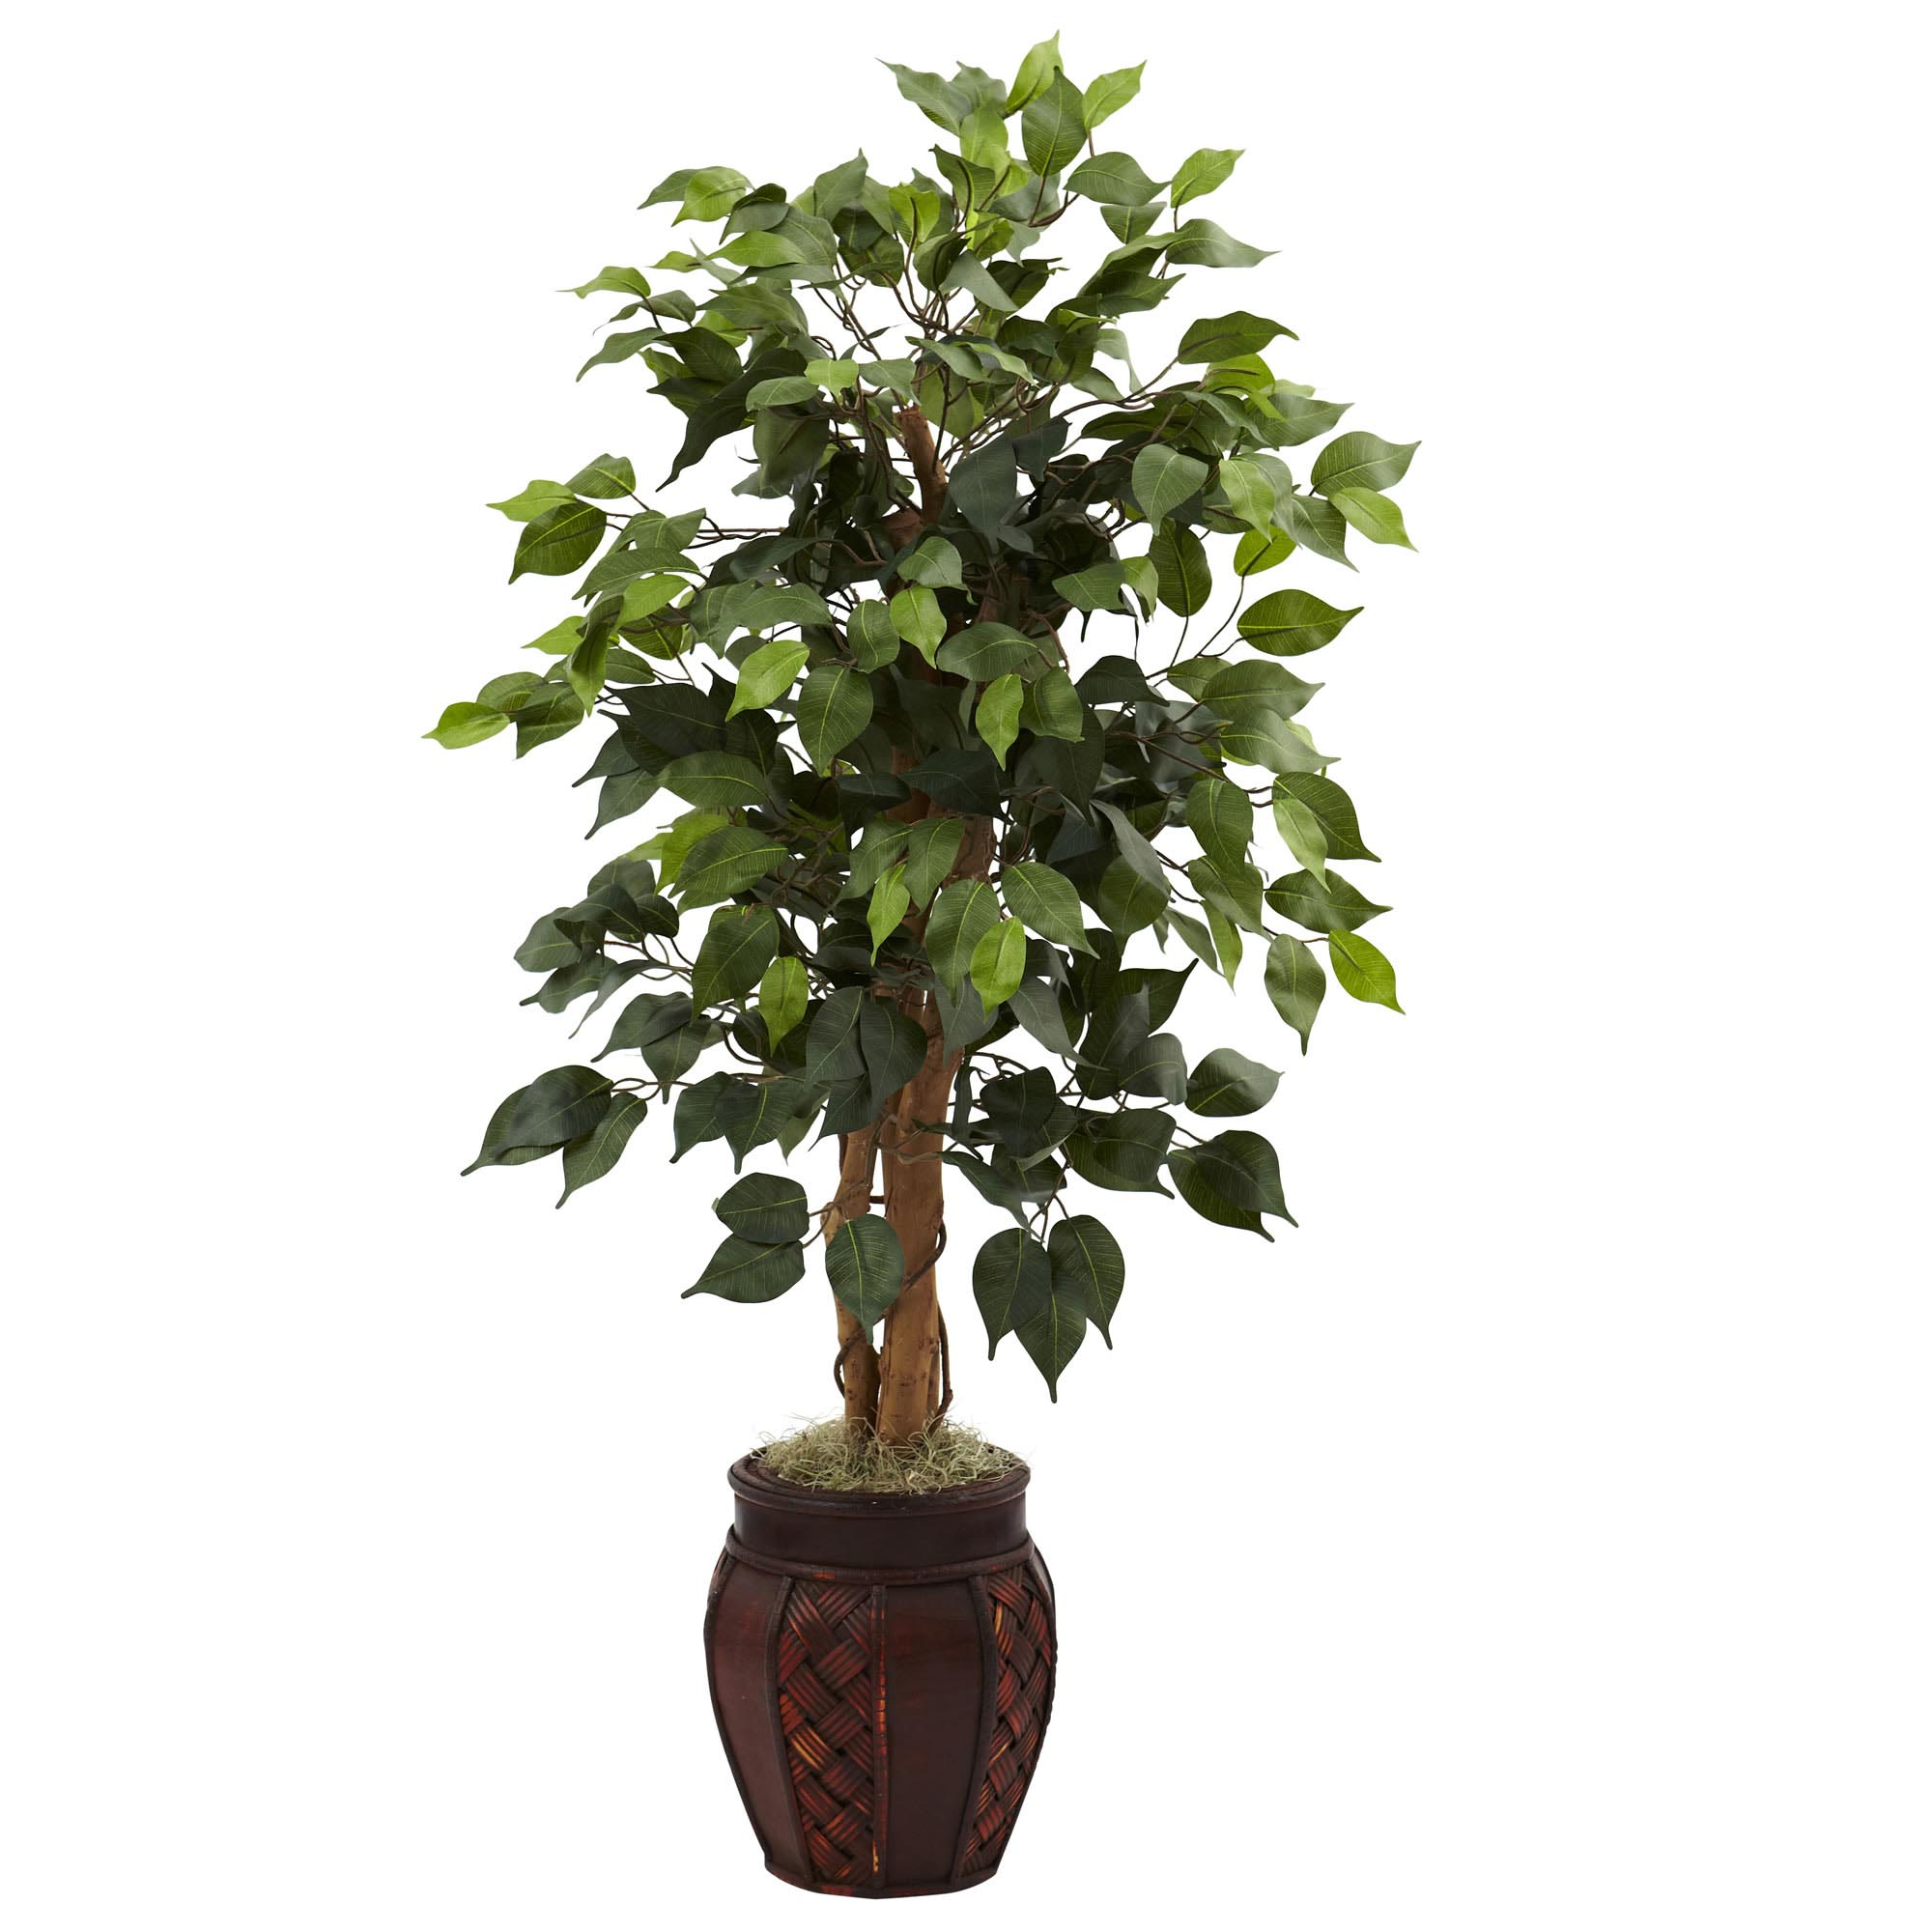 44 inch artificial ficus tree in decorative planter | 5929